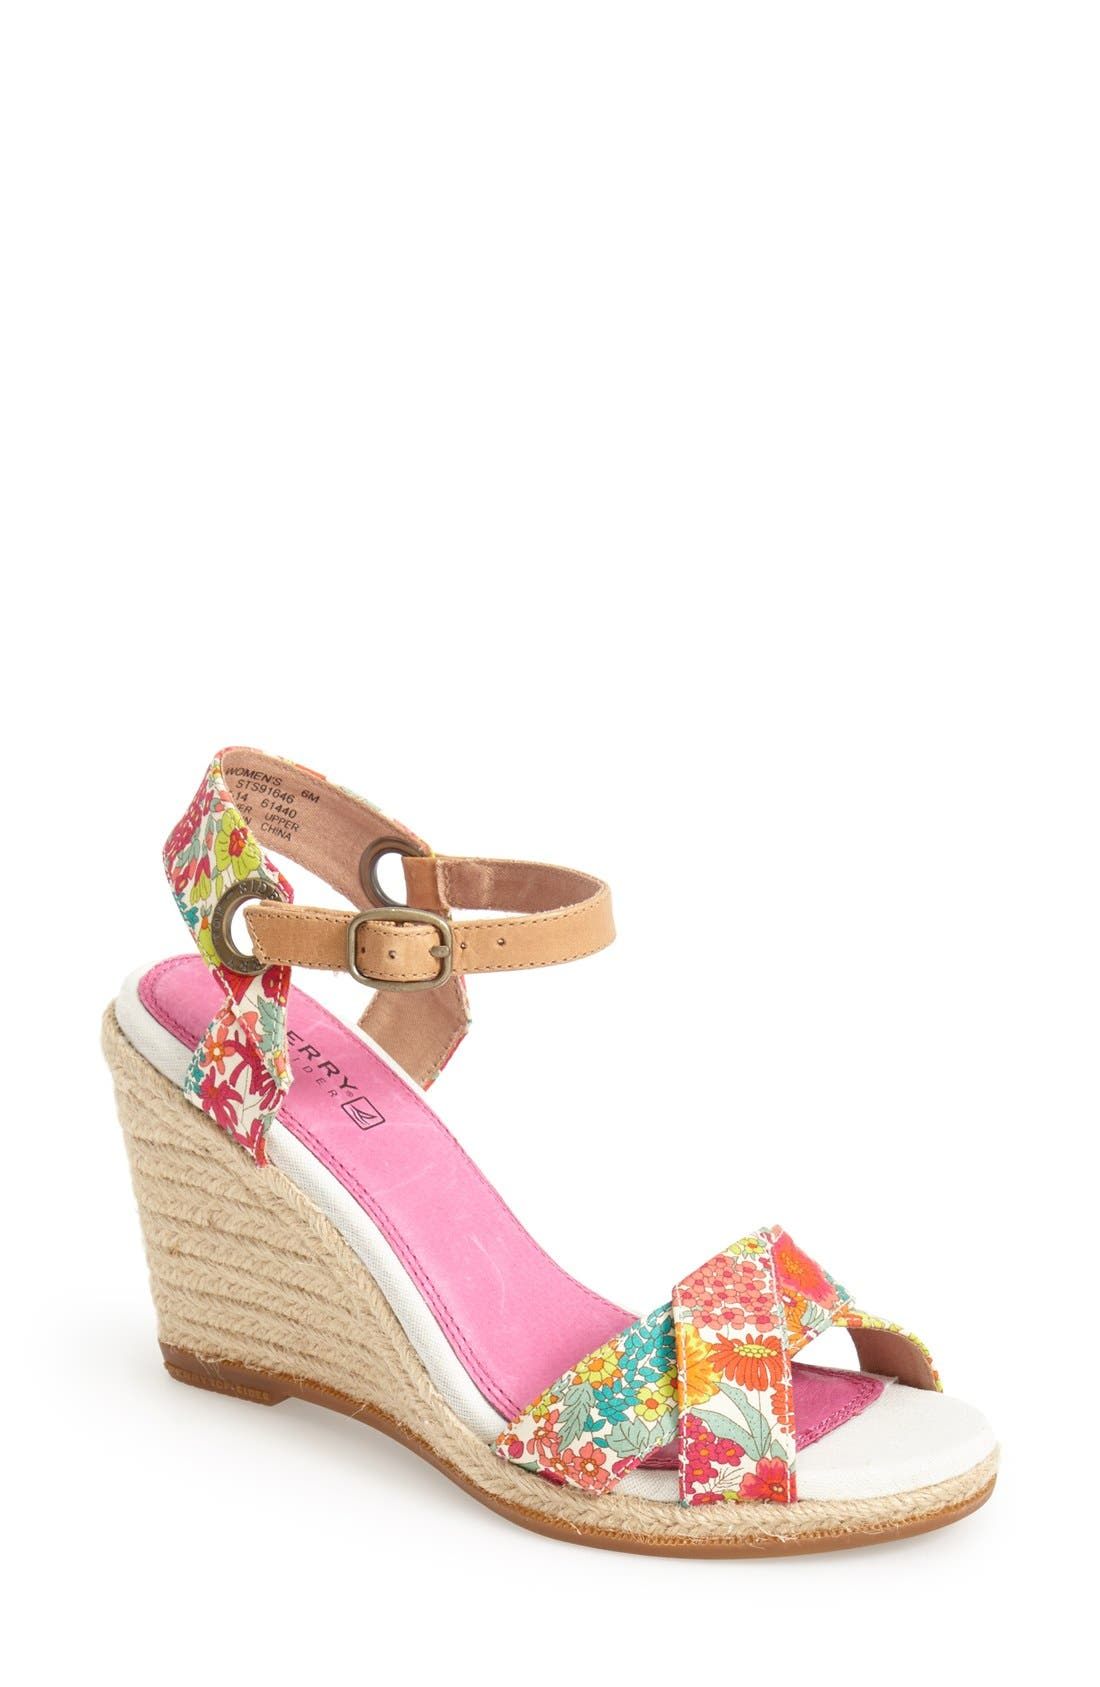 Main Image - Sperry 'Saylor' Espadrille Wedge Sandal (Women)